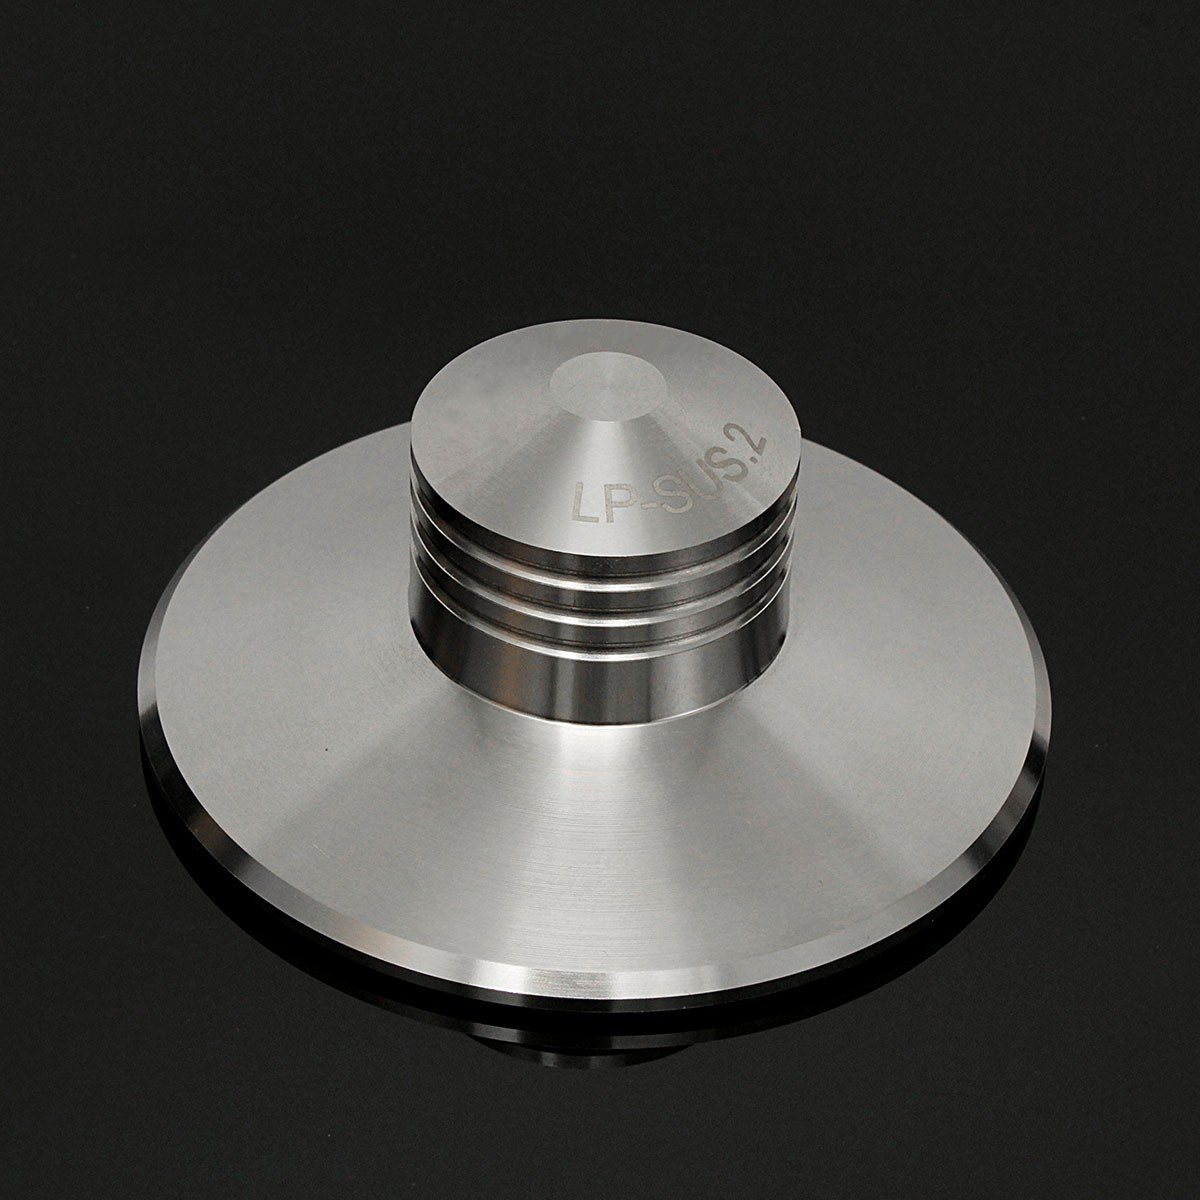 LEORY Metal LP Vinyl Turntable Clamp Record Weight Disc Stabilizer Stainless Steel Stabilizer 380g For Vinyl